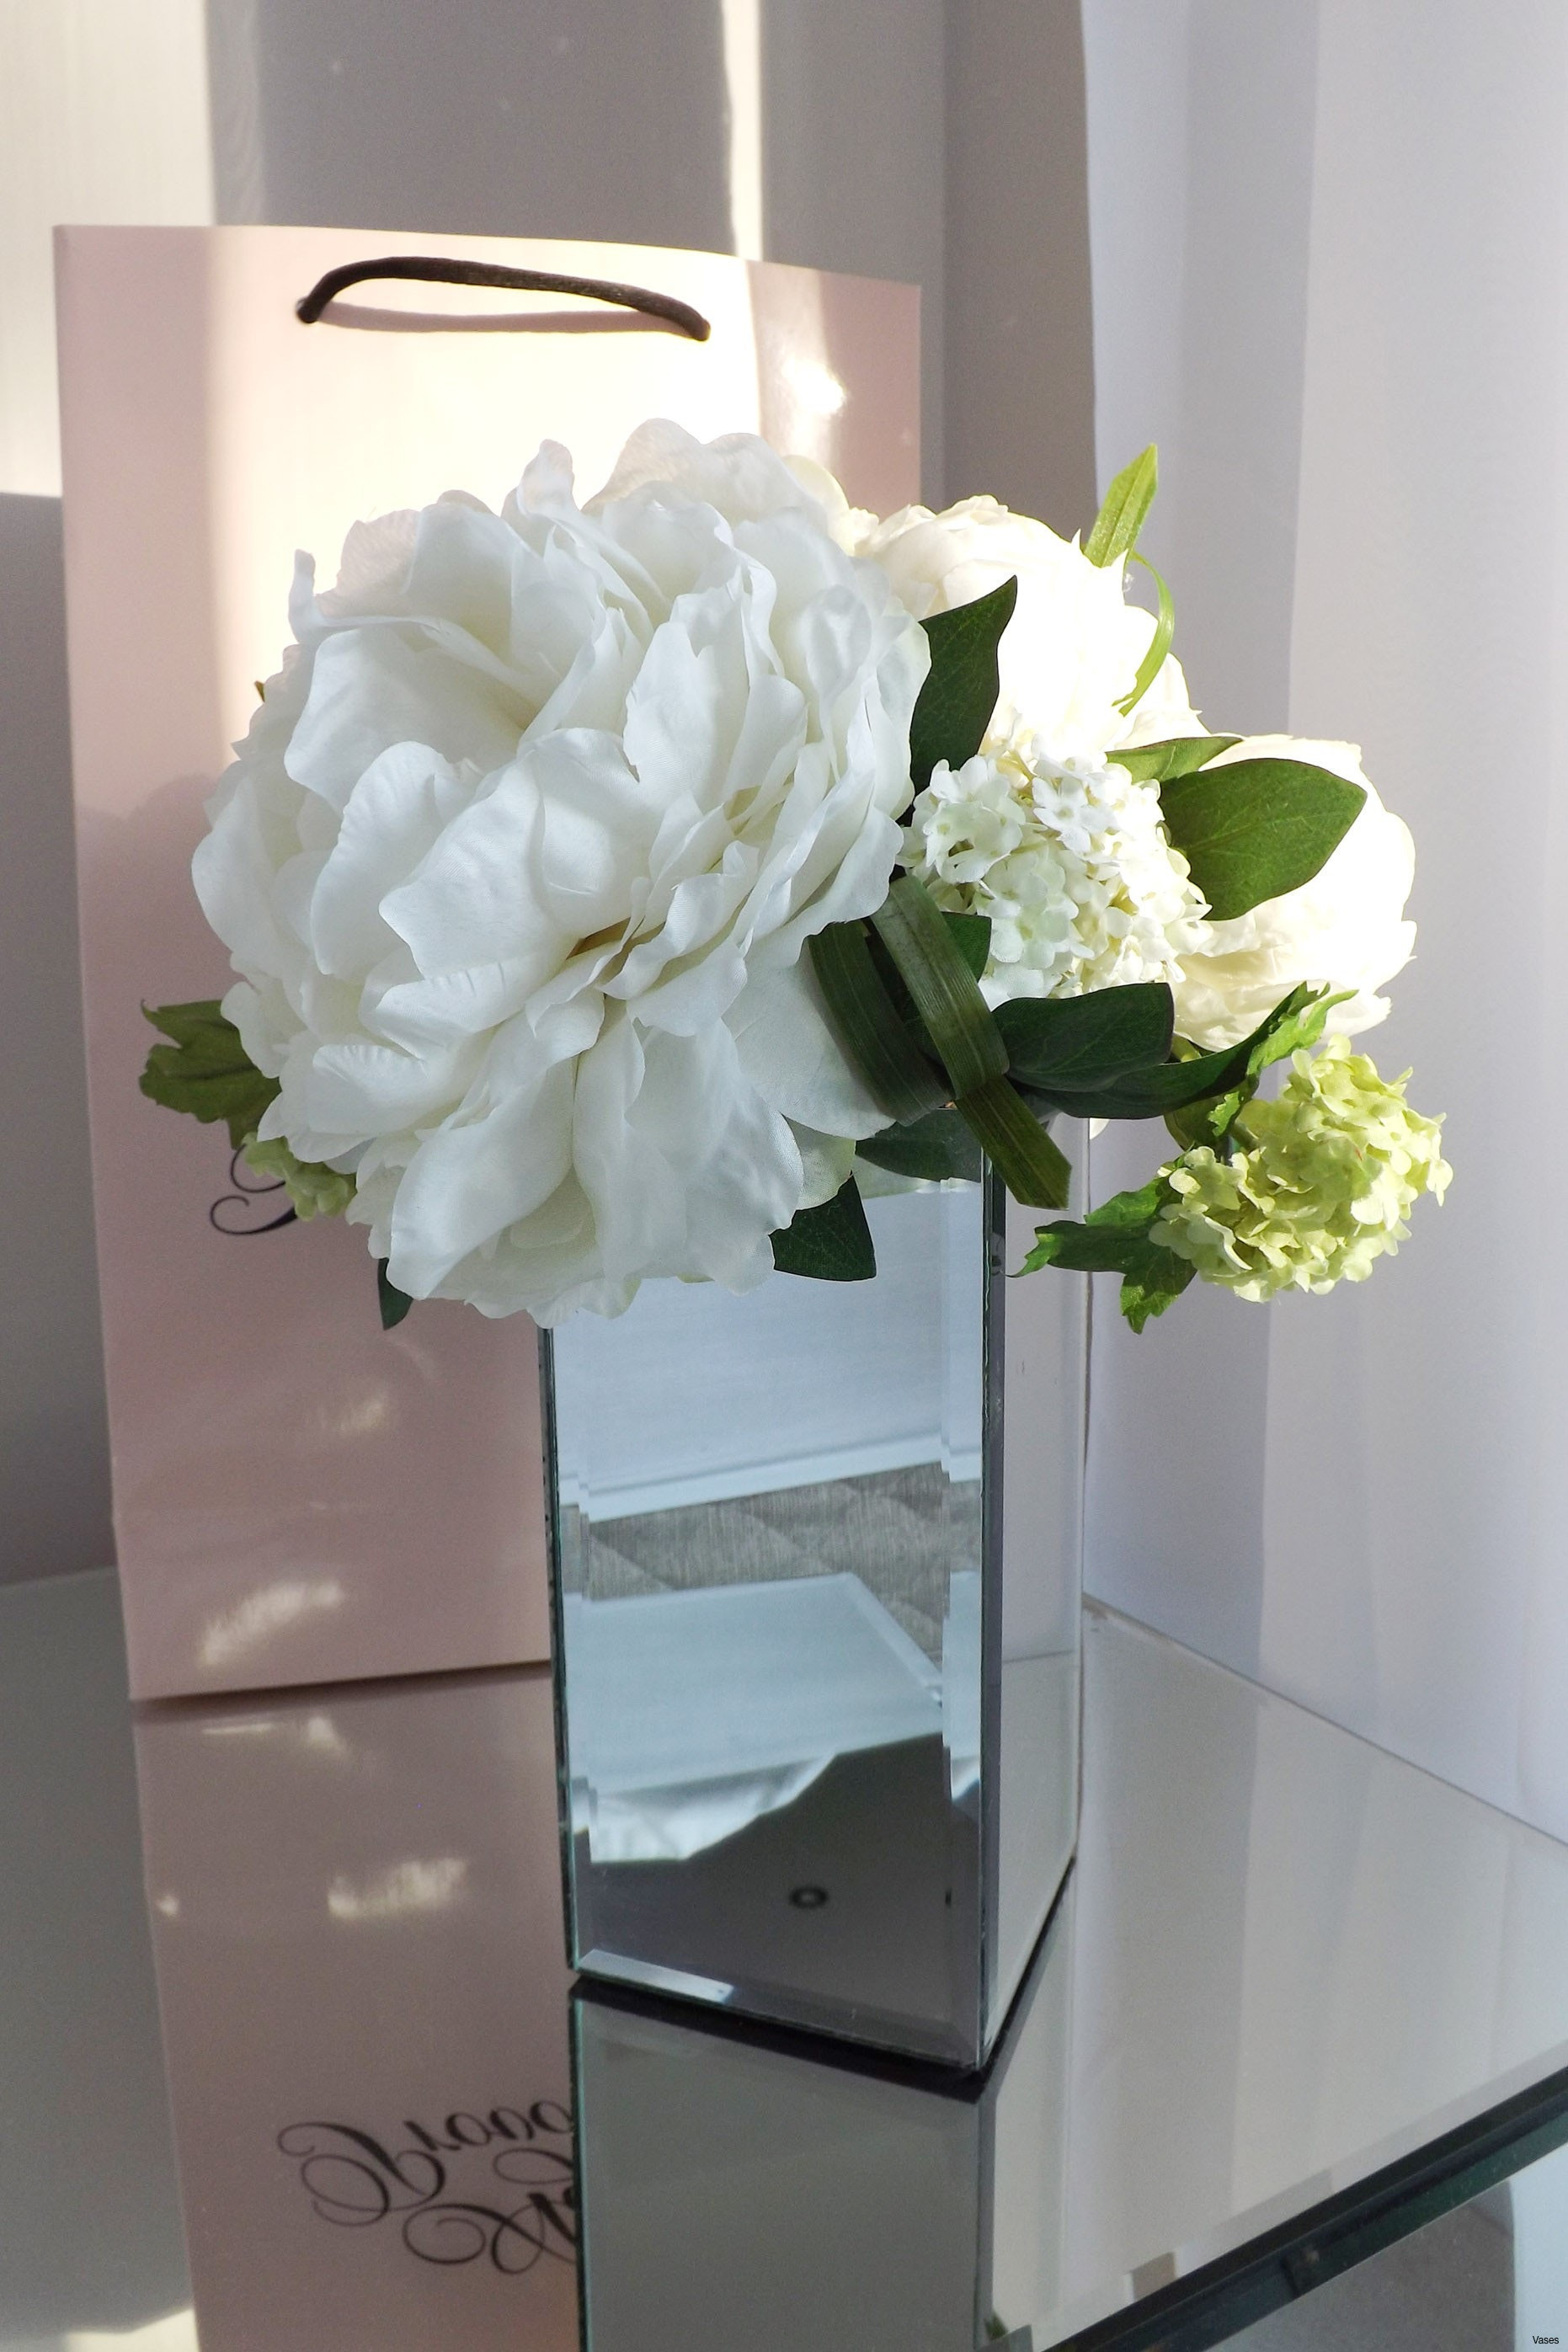 hobby lobby clear vases of hobby lobby tall vases image metal vases 3h mirrored mosaic vase pertaining to hobby lobby tall vases image metal vases 3h mirrored mosaic vase votivei 0d hobby lobby canada to